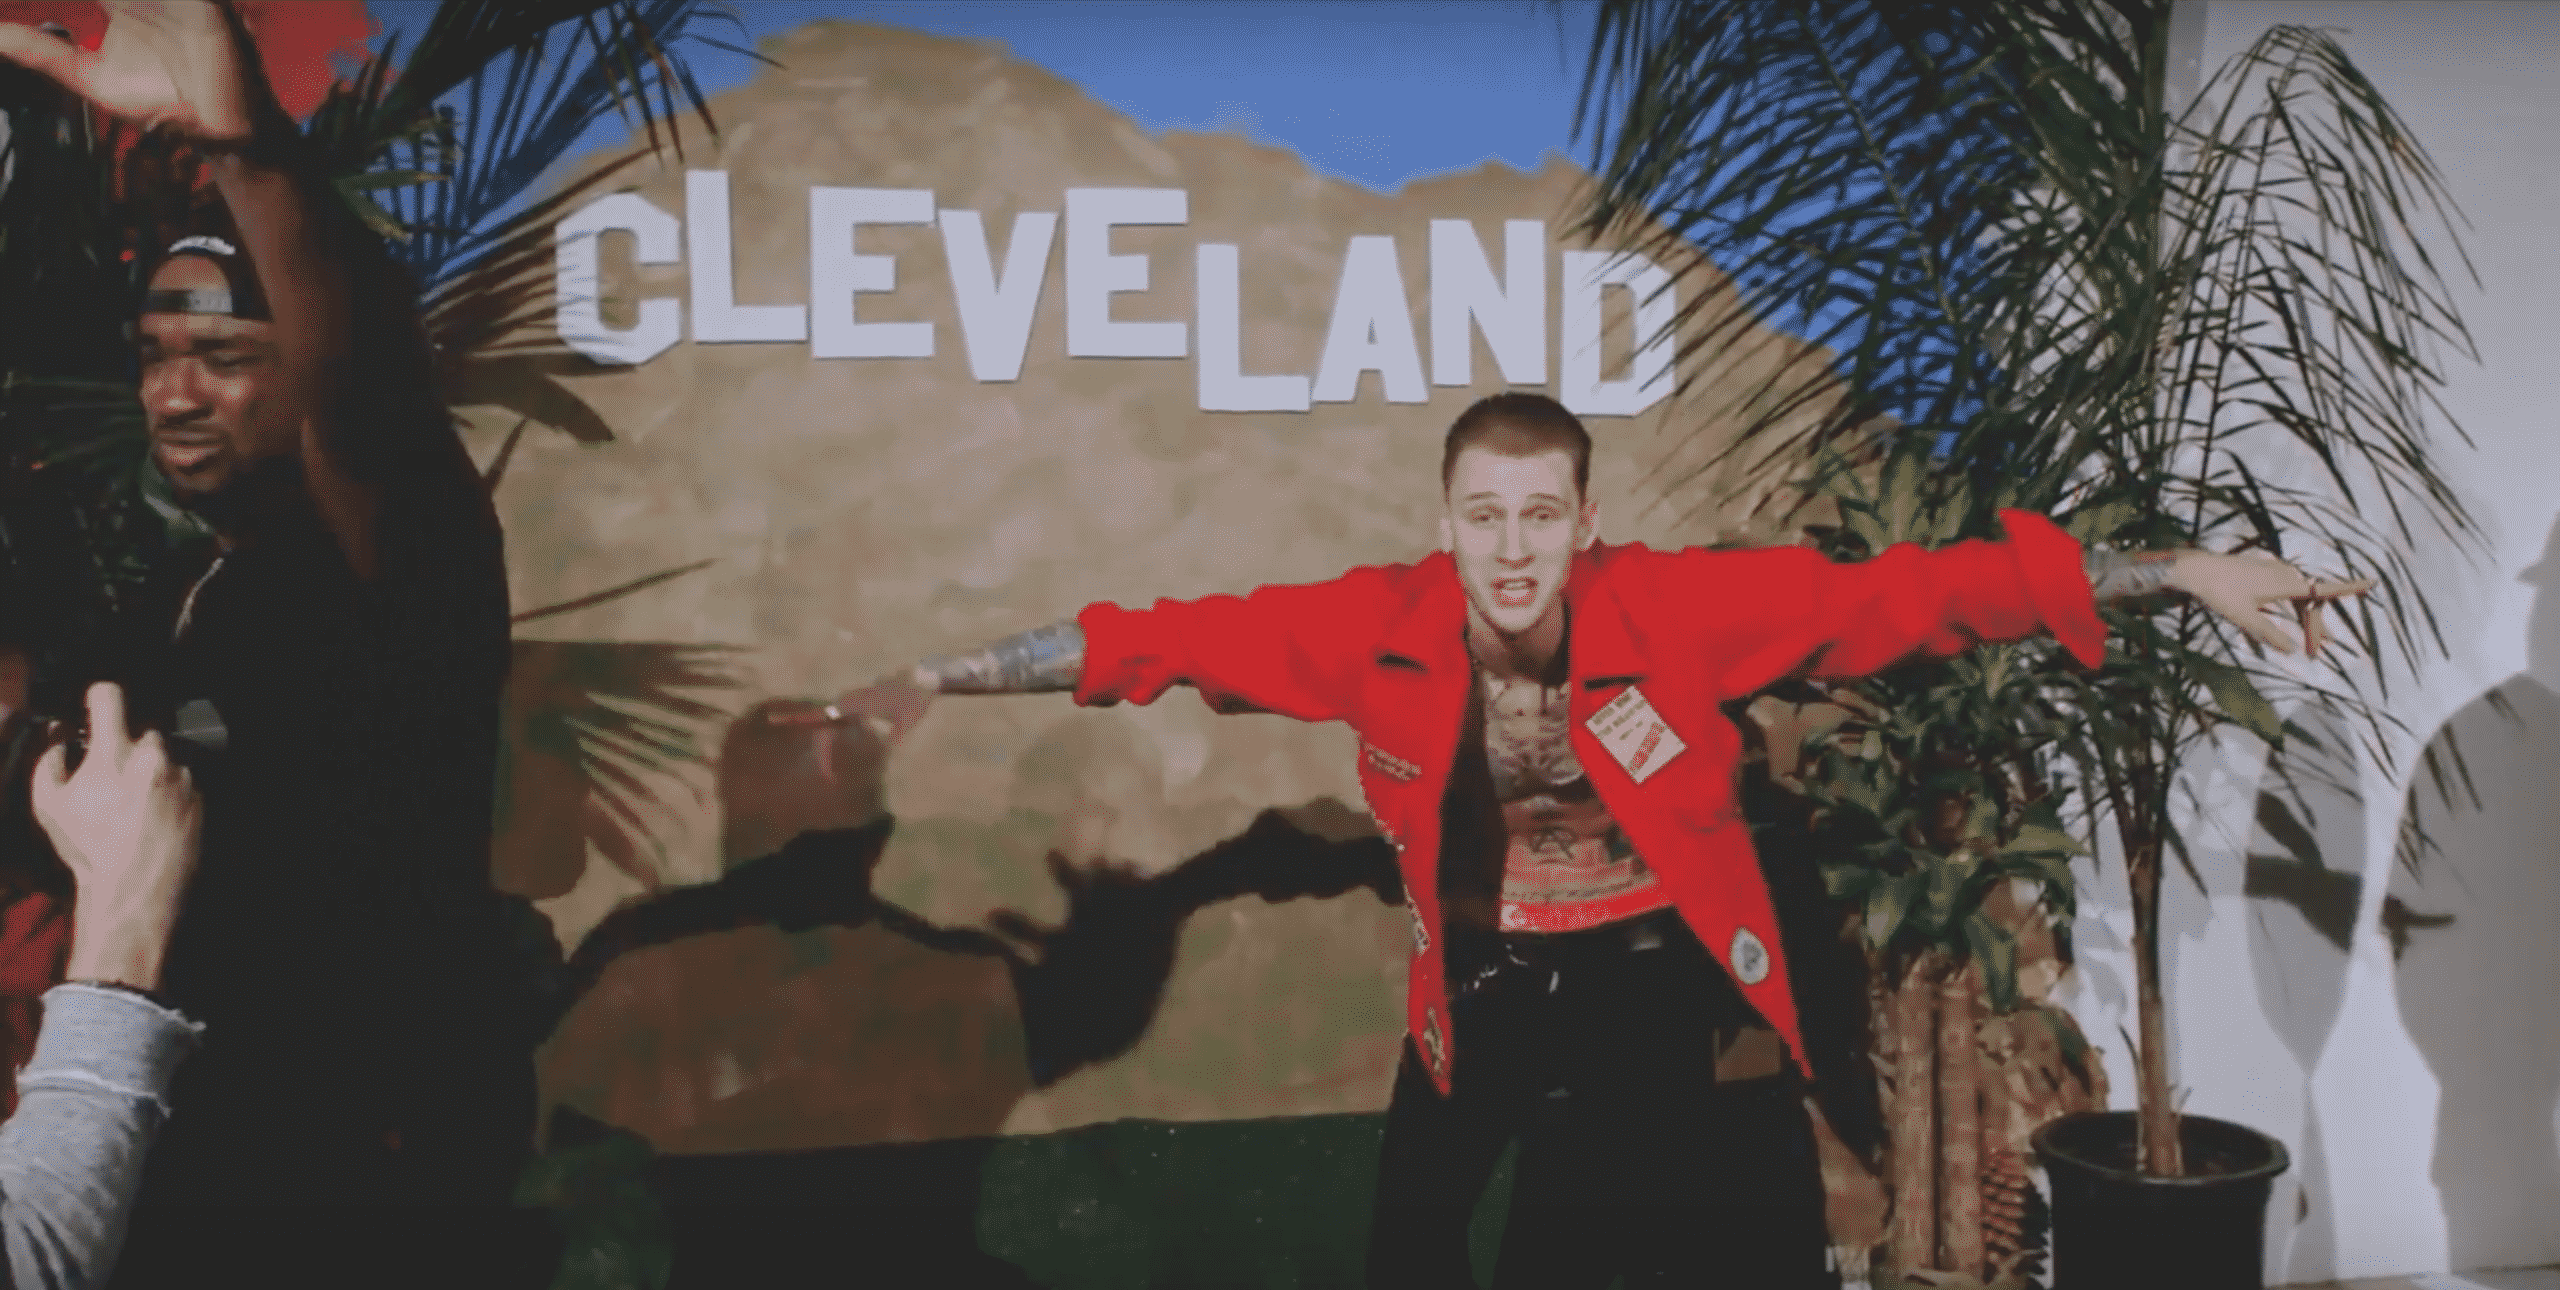 image machine gun kelly clip all night long